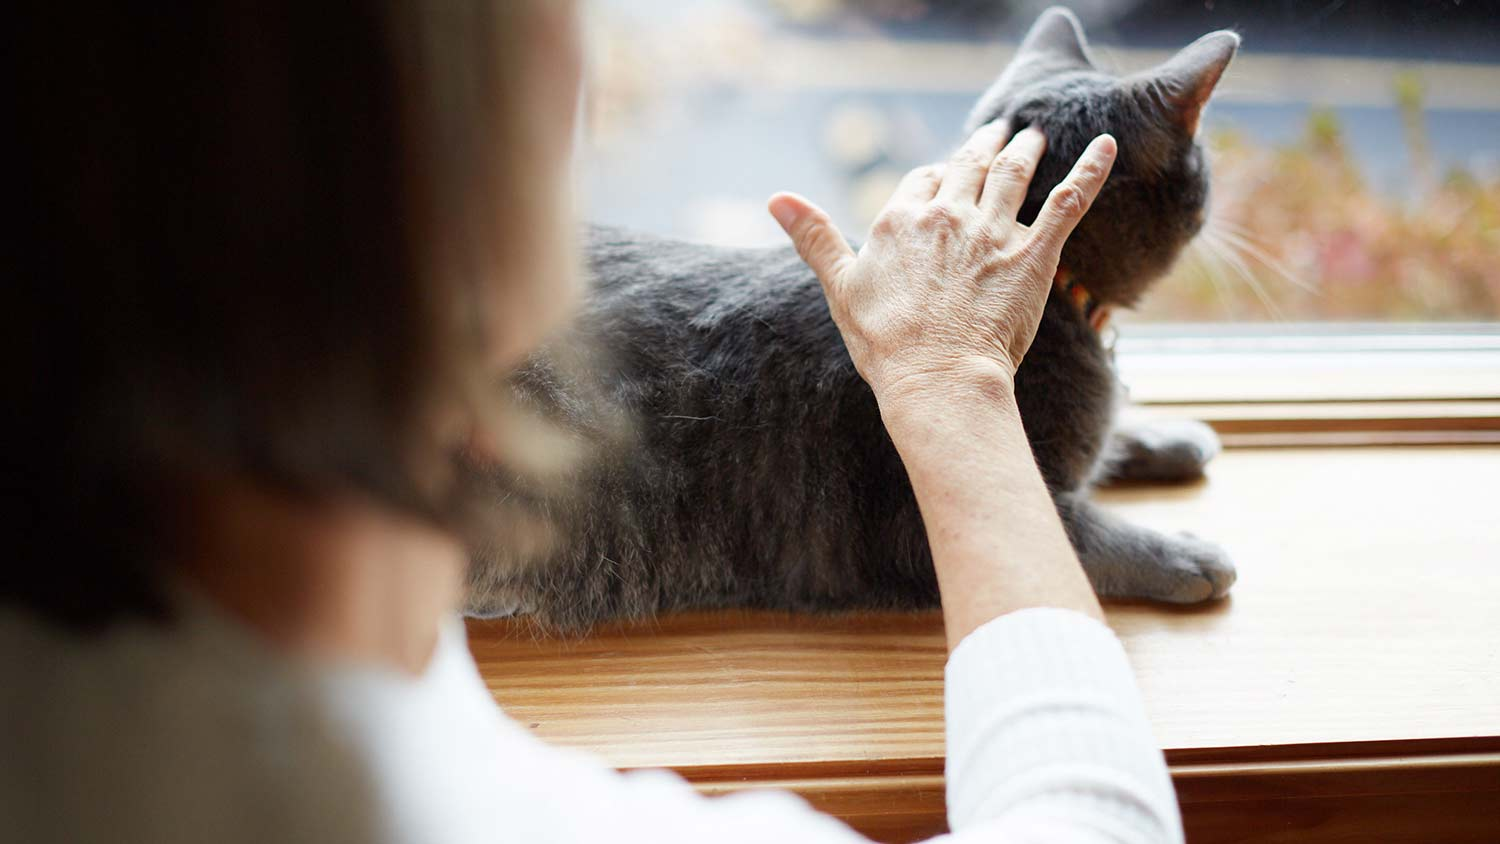 woman-touches-cat